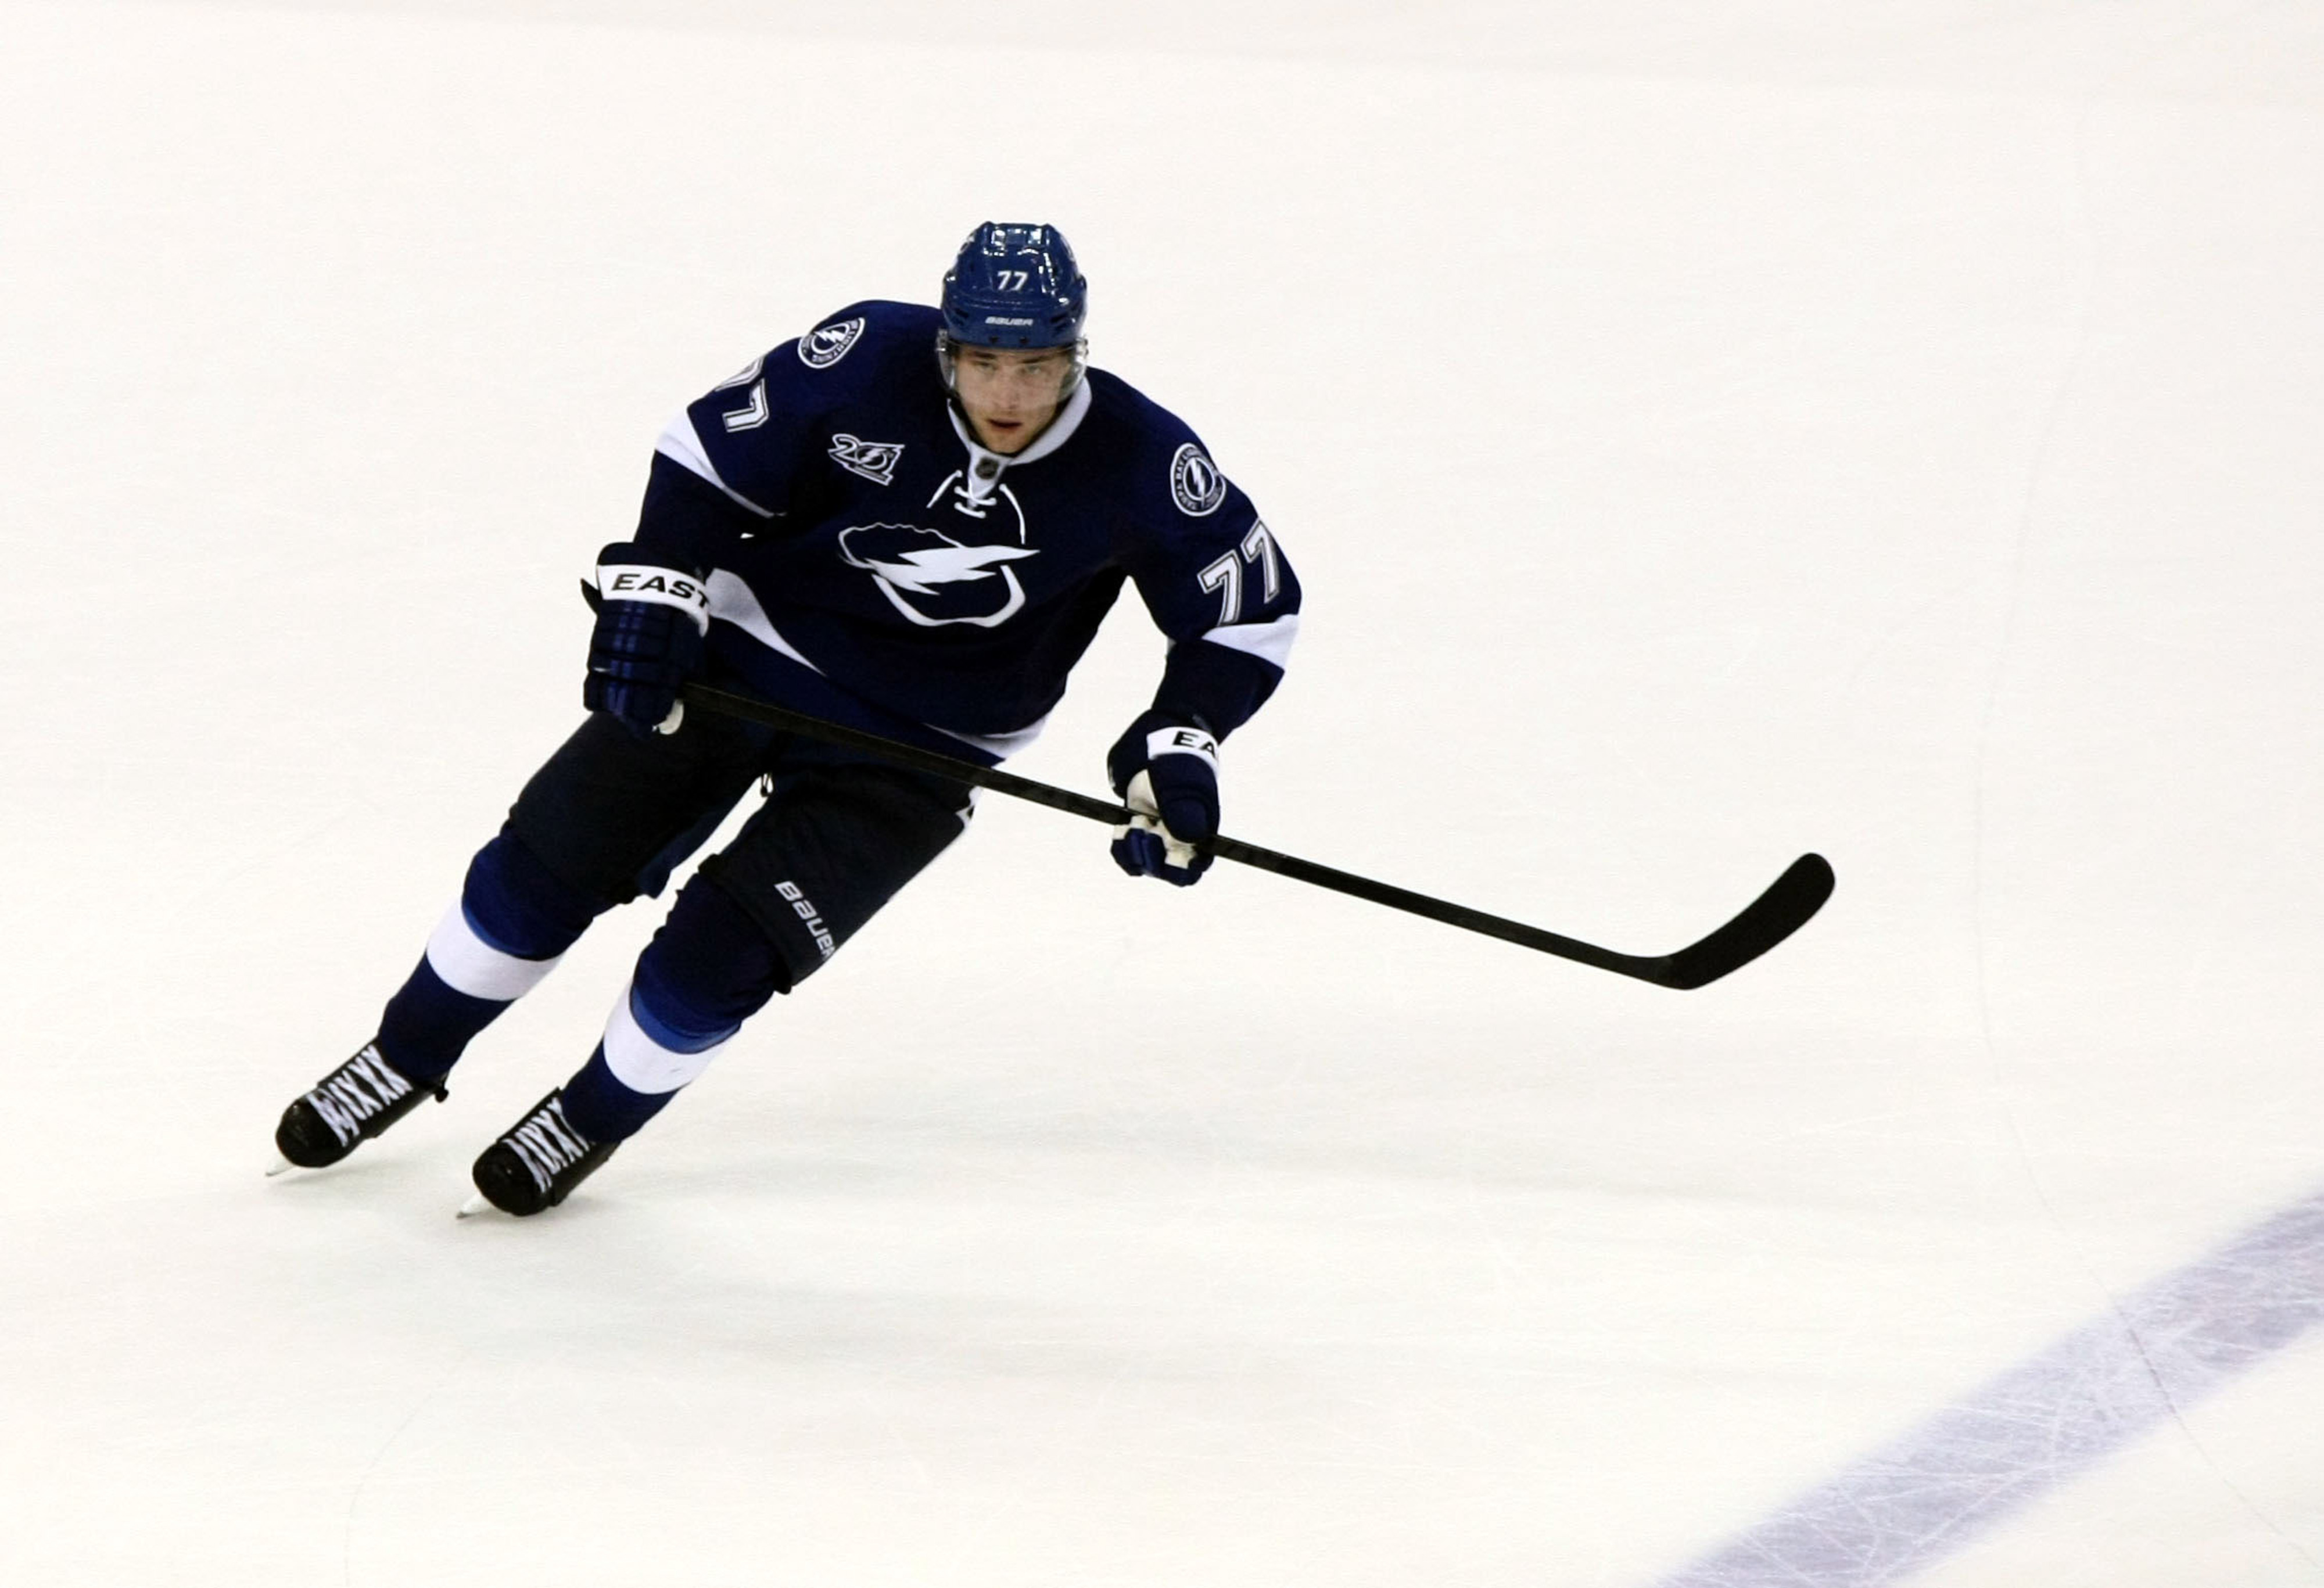 Victor Hedman, who played in the KHL during the 2012 NHL lockout, was one of Tampa Bay's best players against the Montreal Canadiens.